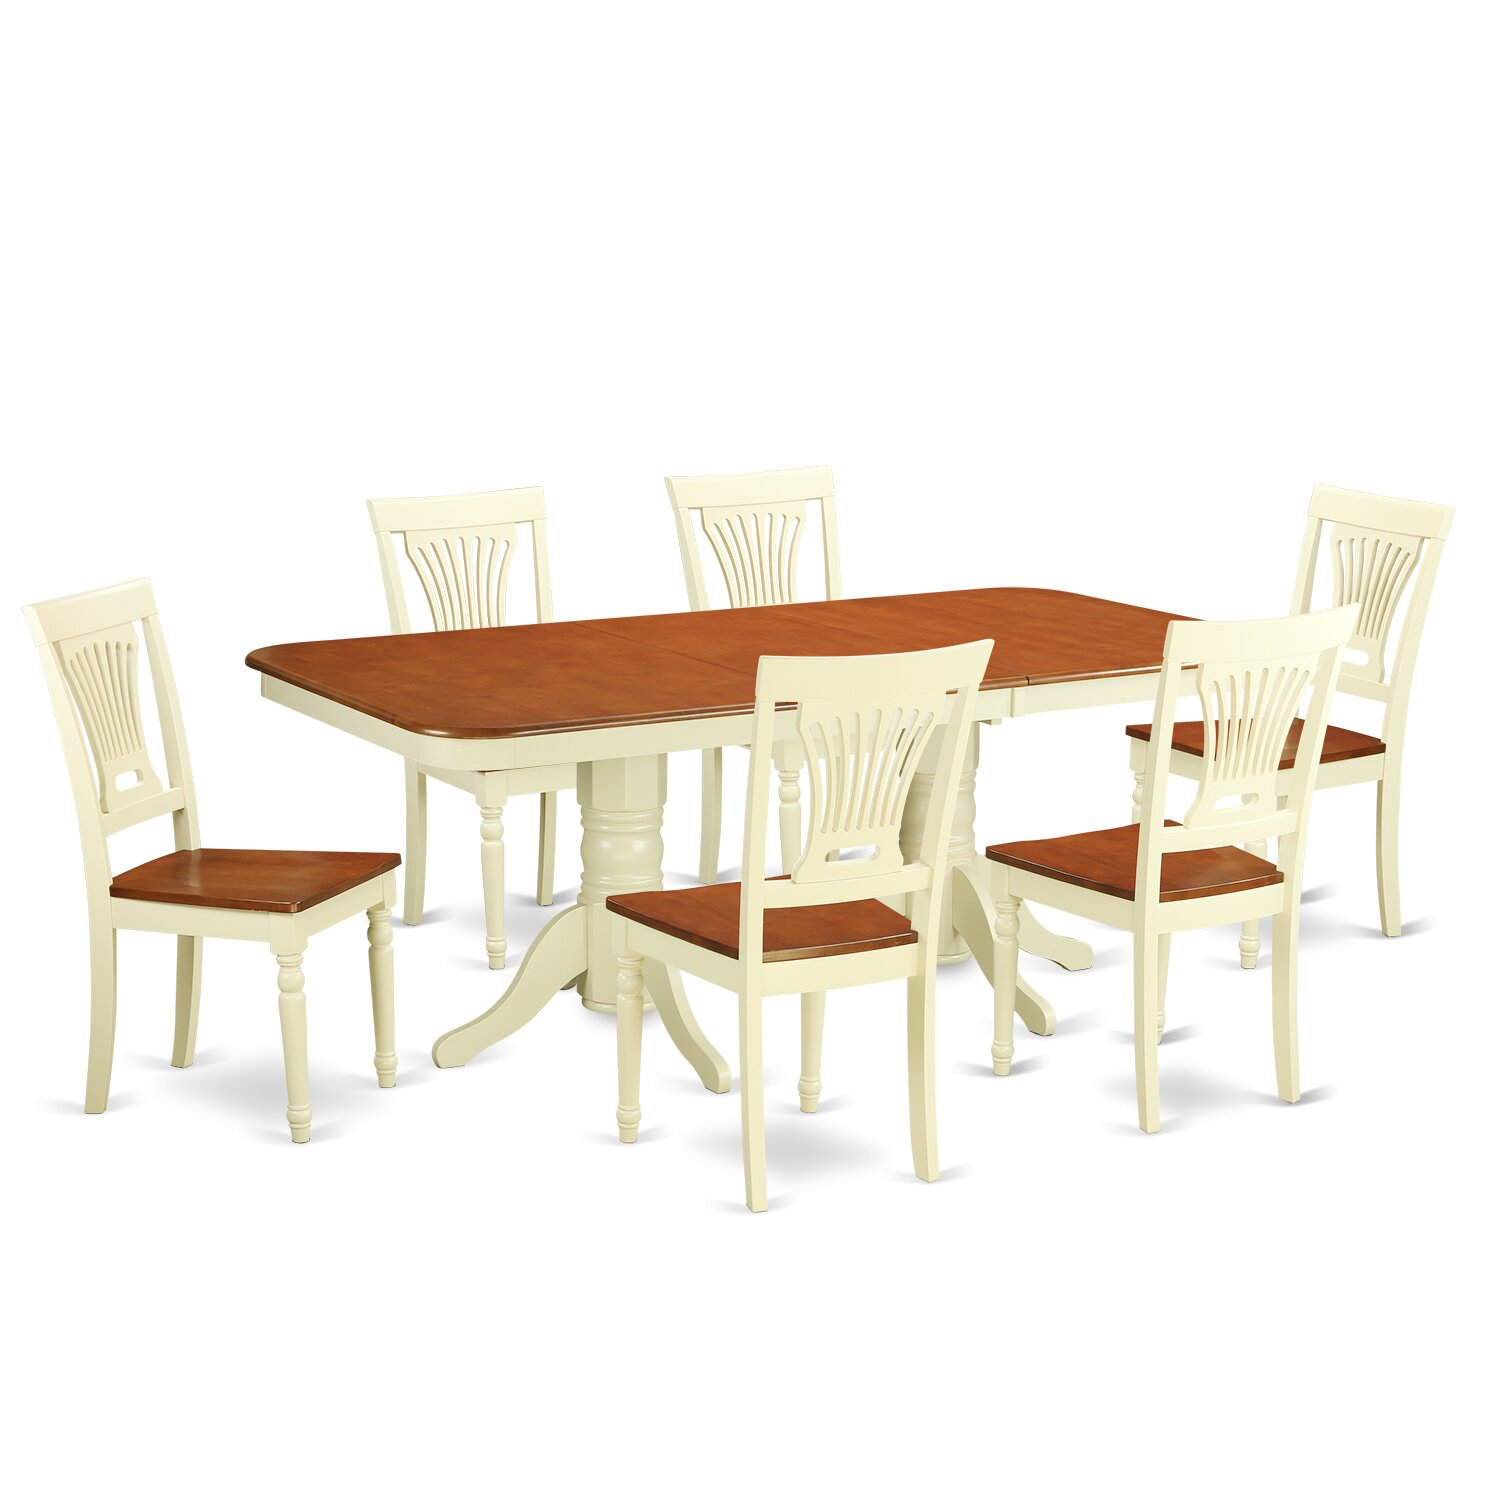 PC Dining Set Dining Table And 6 Dining Chairs For Dining NAPL7 WHI . Full resolution‎  image, nominally Width 1500 Height 1500 pixels, image with #4E260E.